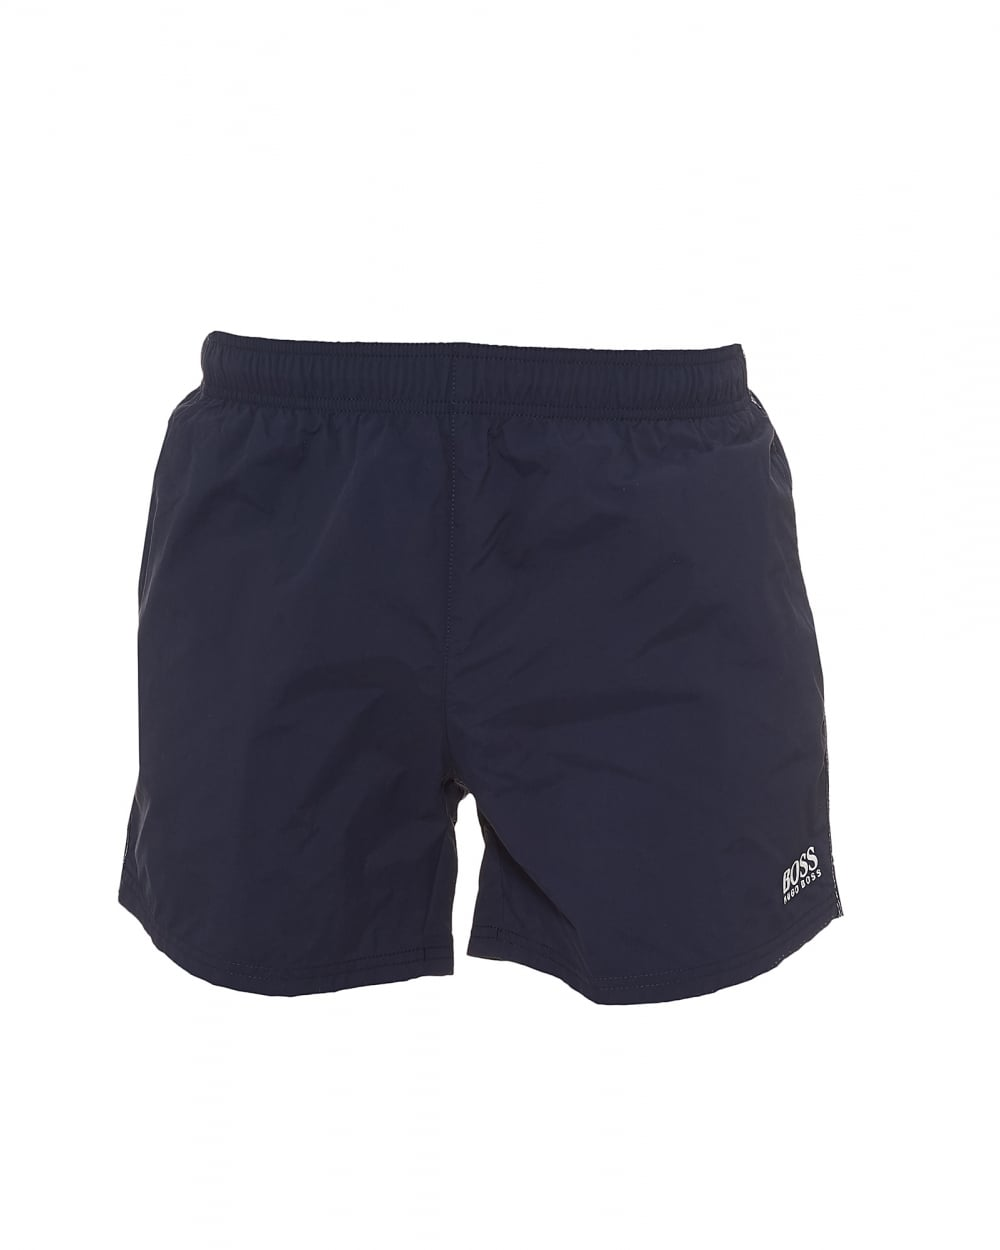 216a6d88f Hugo Boss Body Mens Perch Swim Shorts, Logo Navy Blue Swimming Trunks